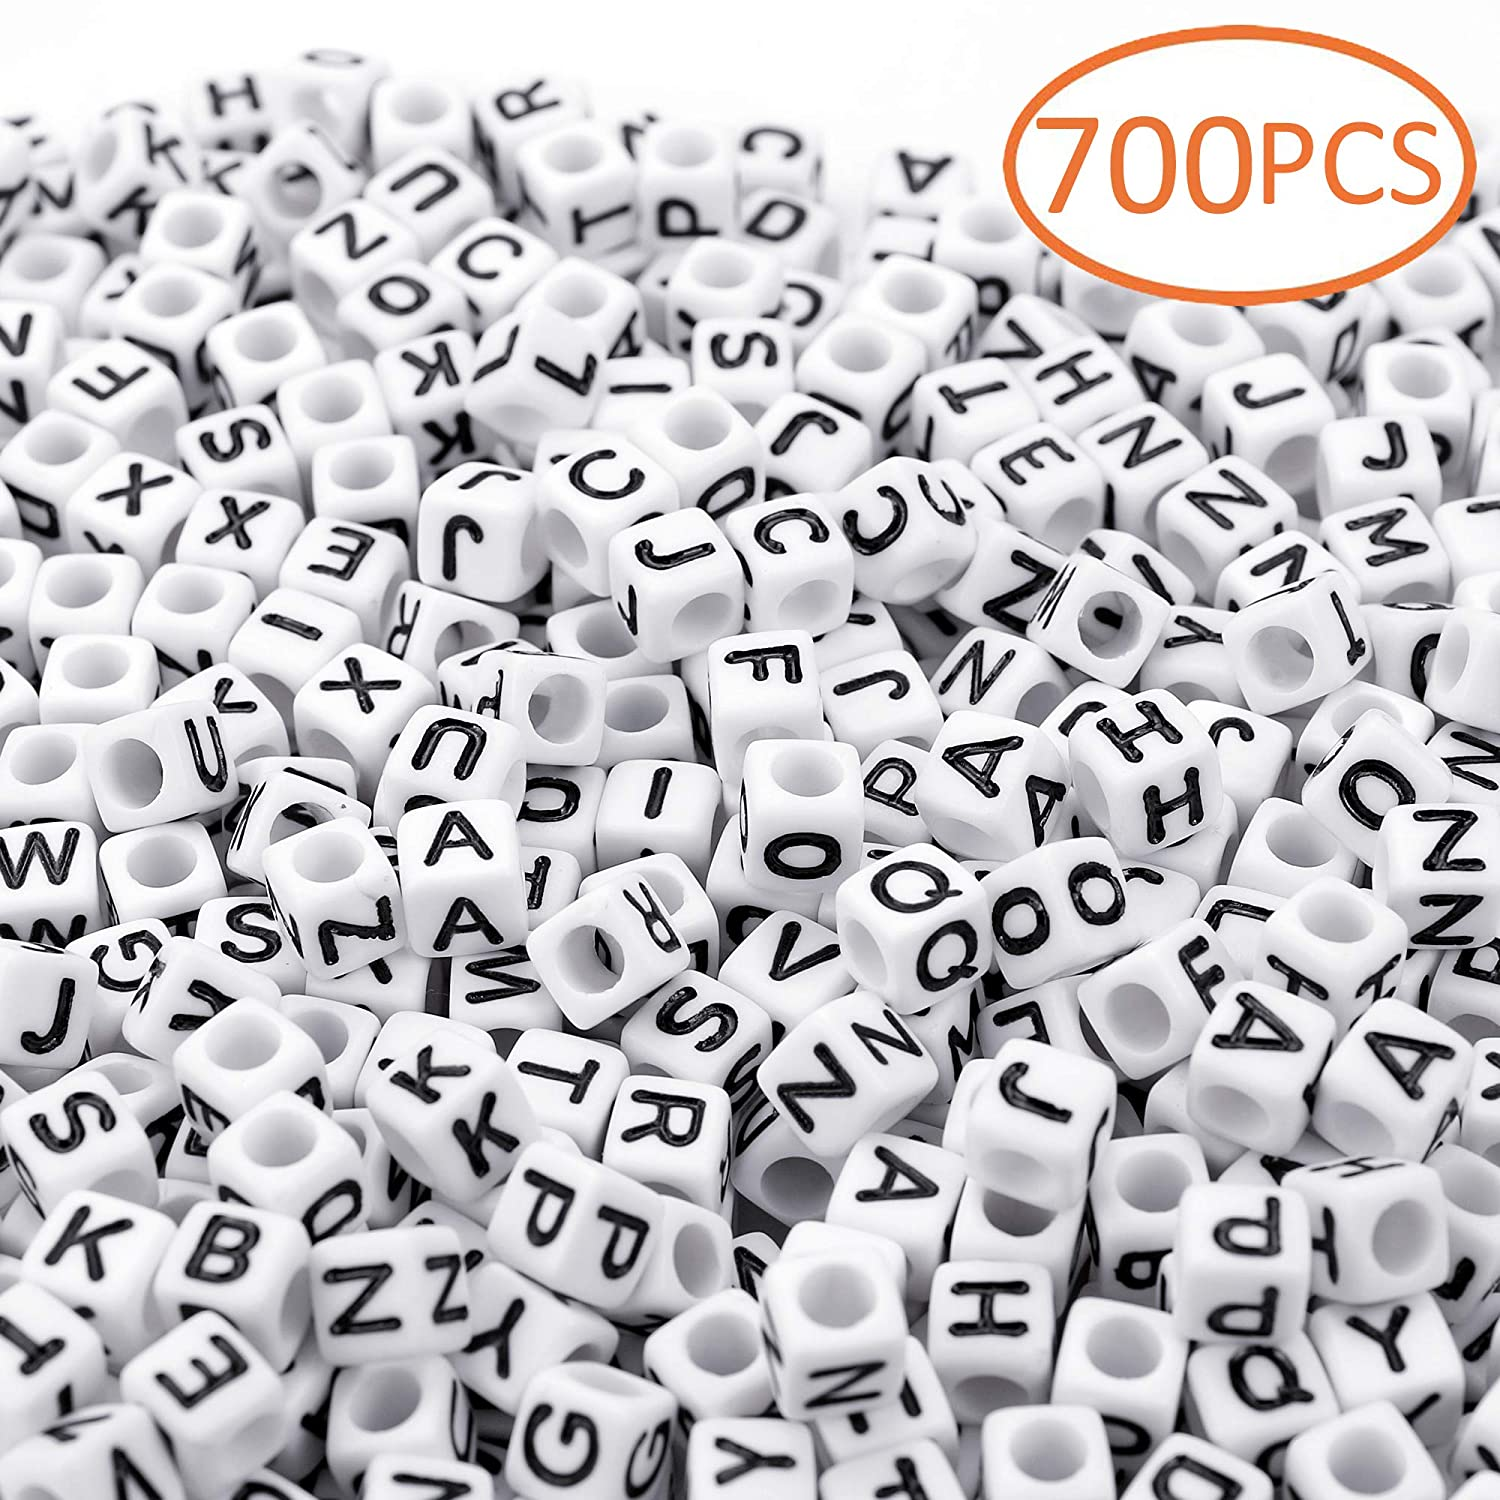 6mm 700PCS White Letter Cube Beads for Jewelry Making DIY Necklace Bracelet